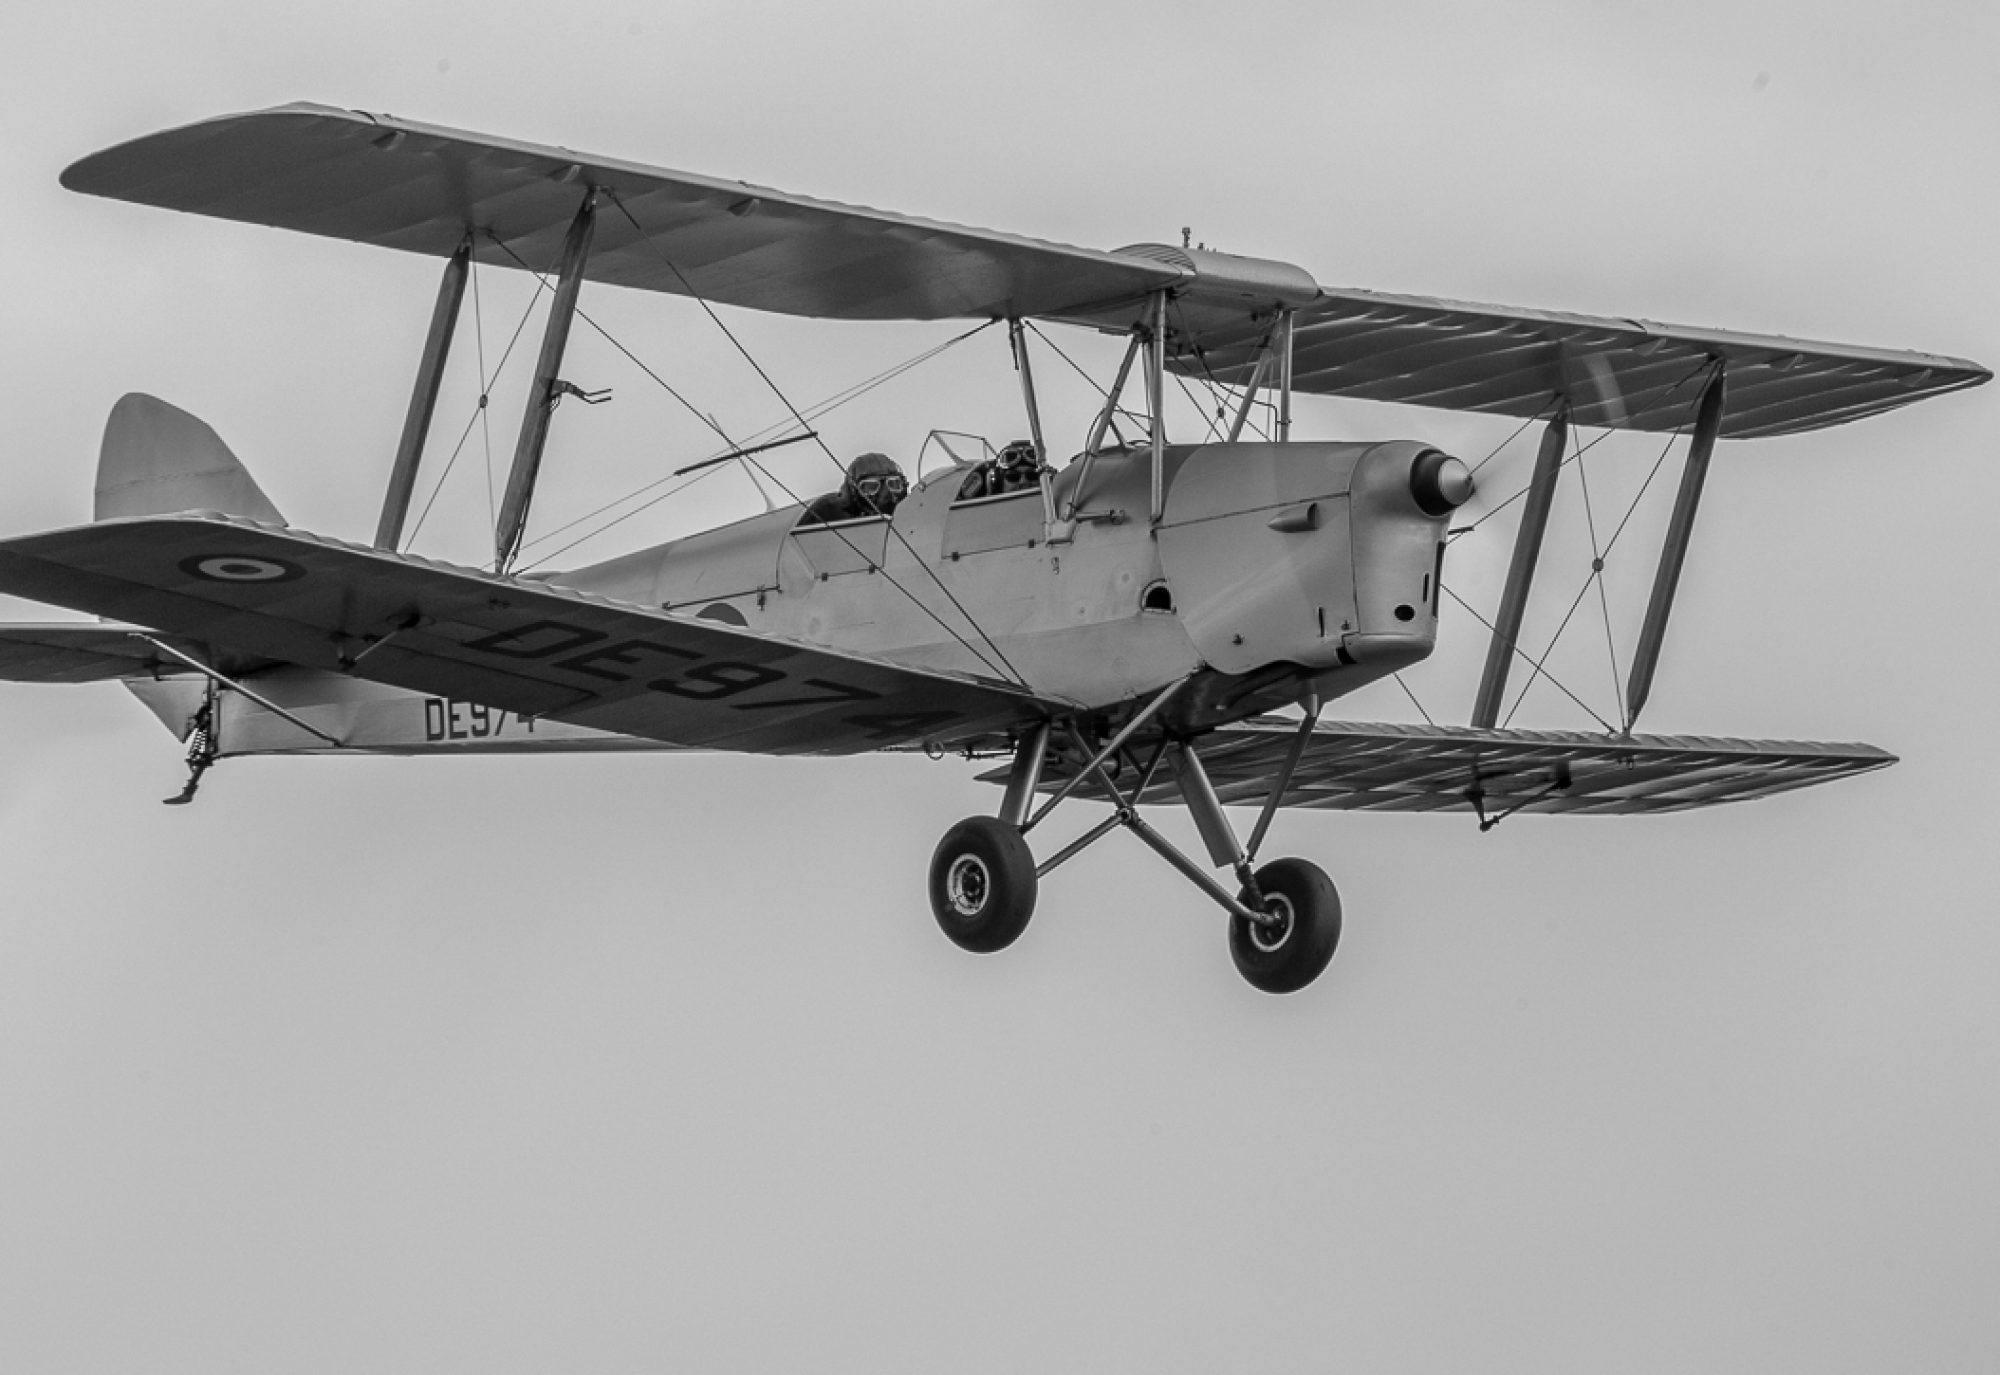 Robertsbridge Aviation Society